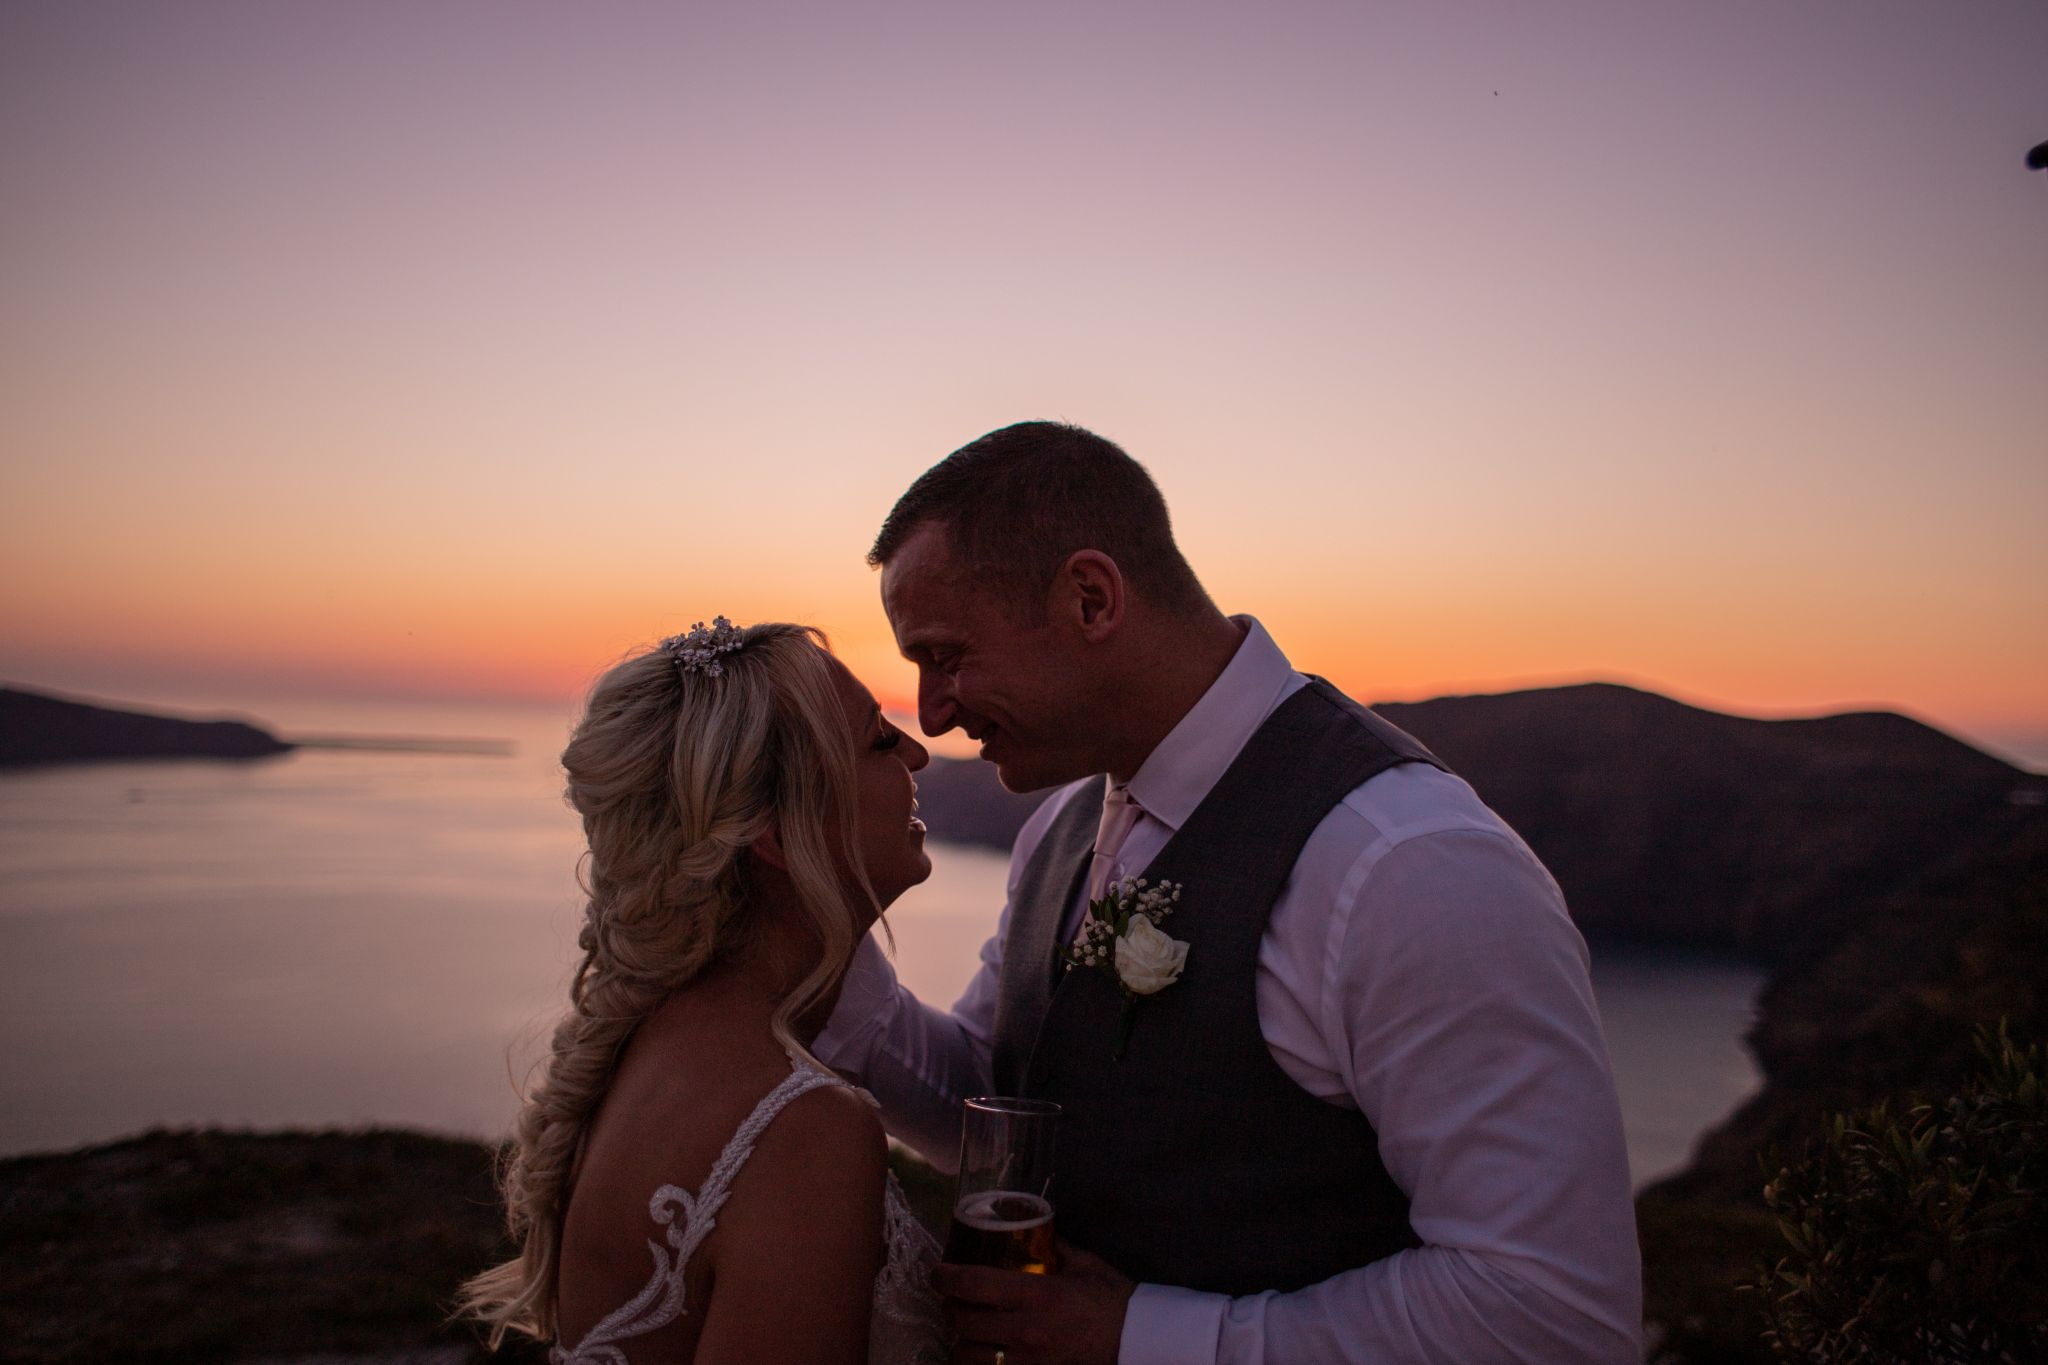 north east wedding photographer hannah layford wedding photography santorini wedding bride and groom sunset laughing